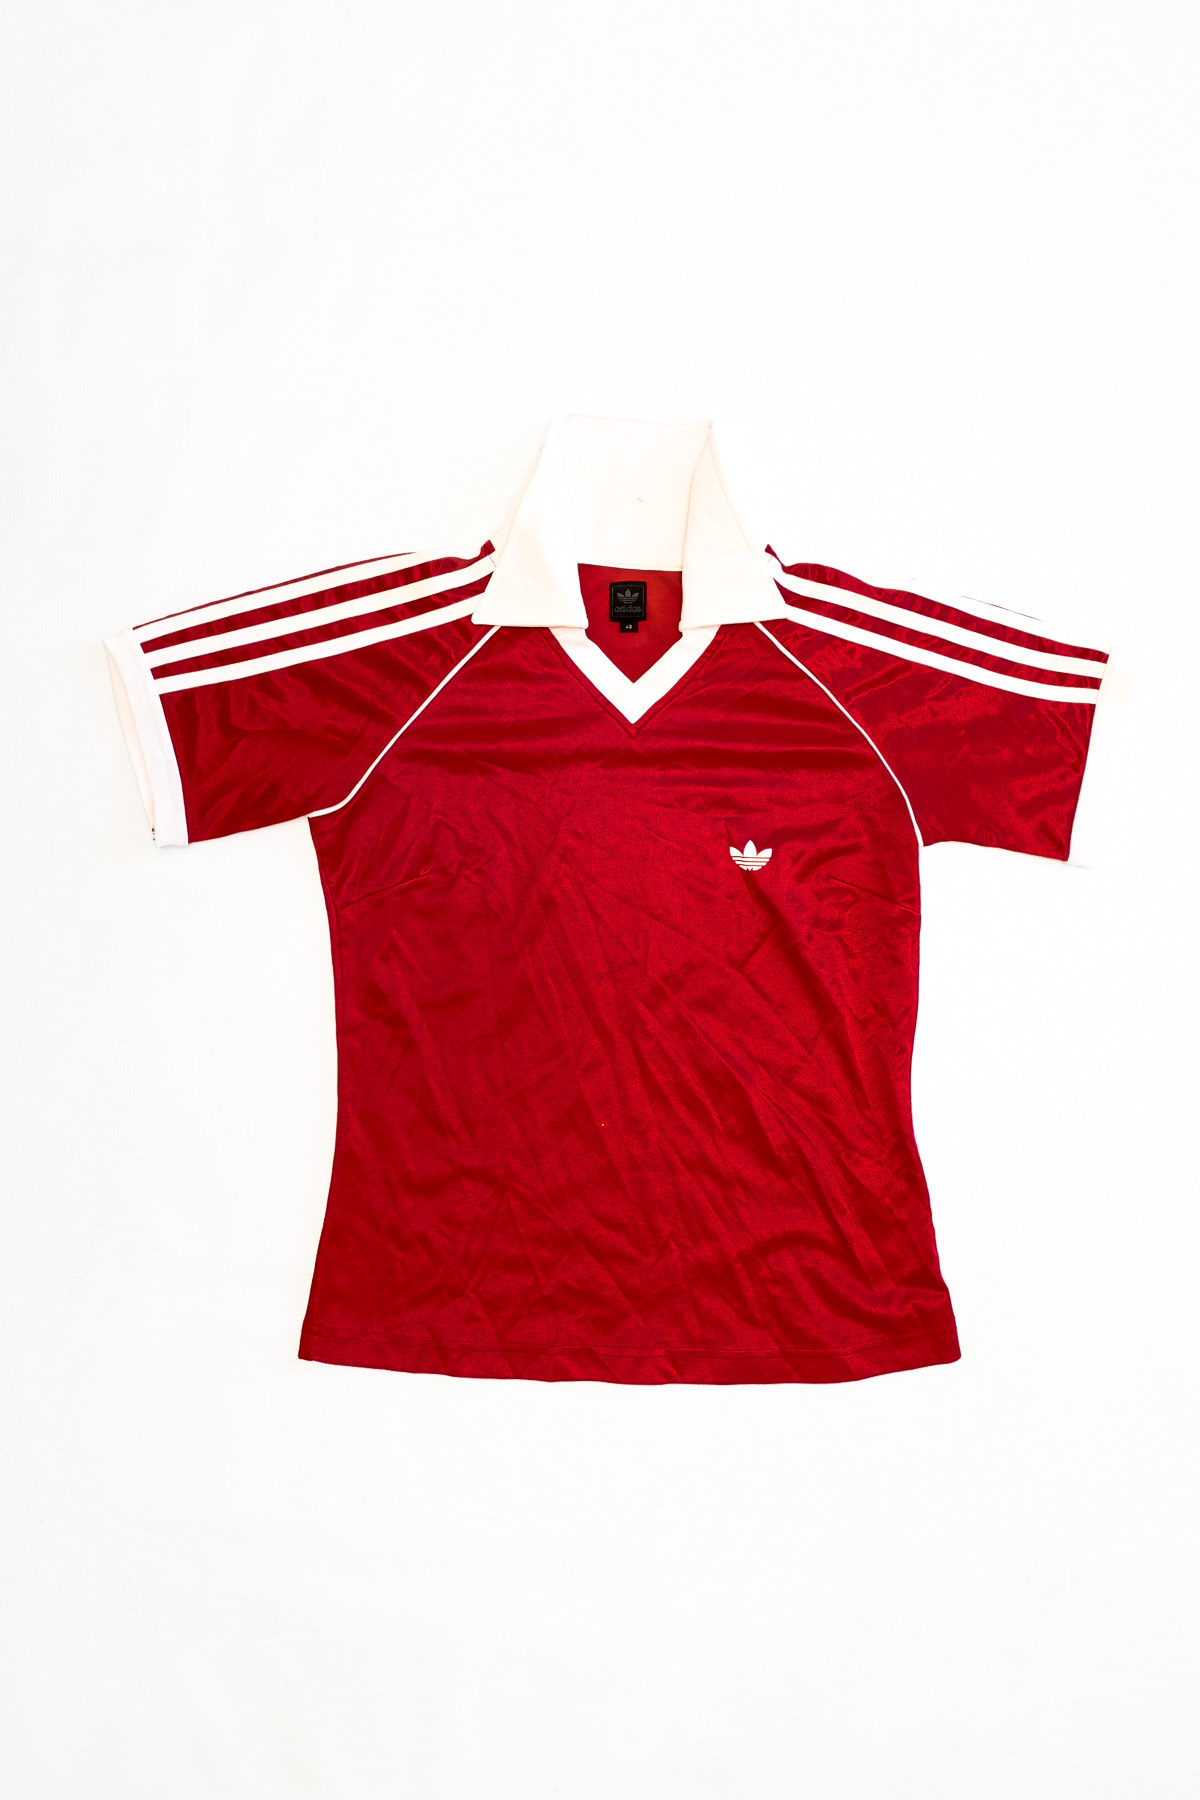 Adidas T-SHIRT VINTAGE Red